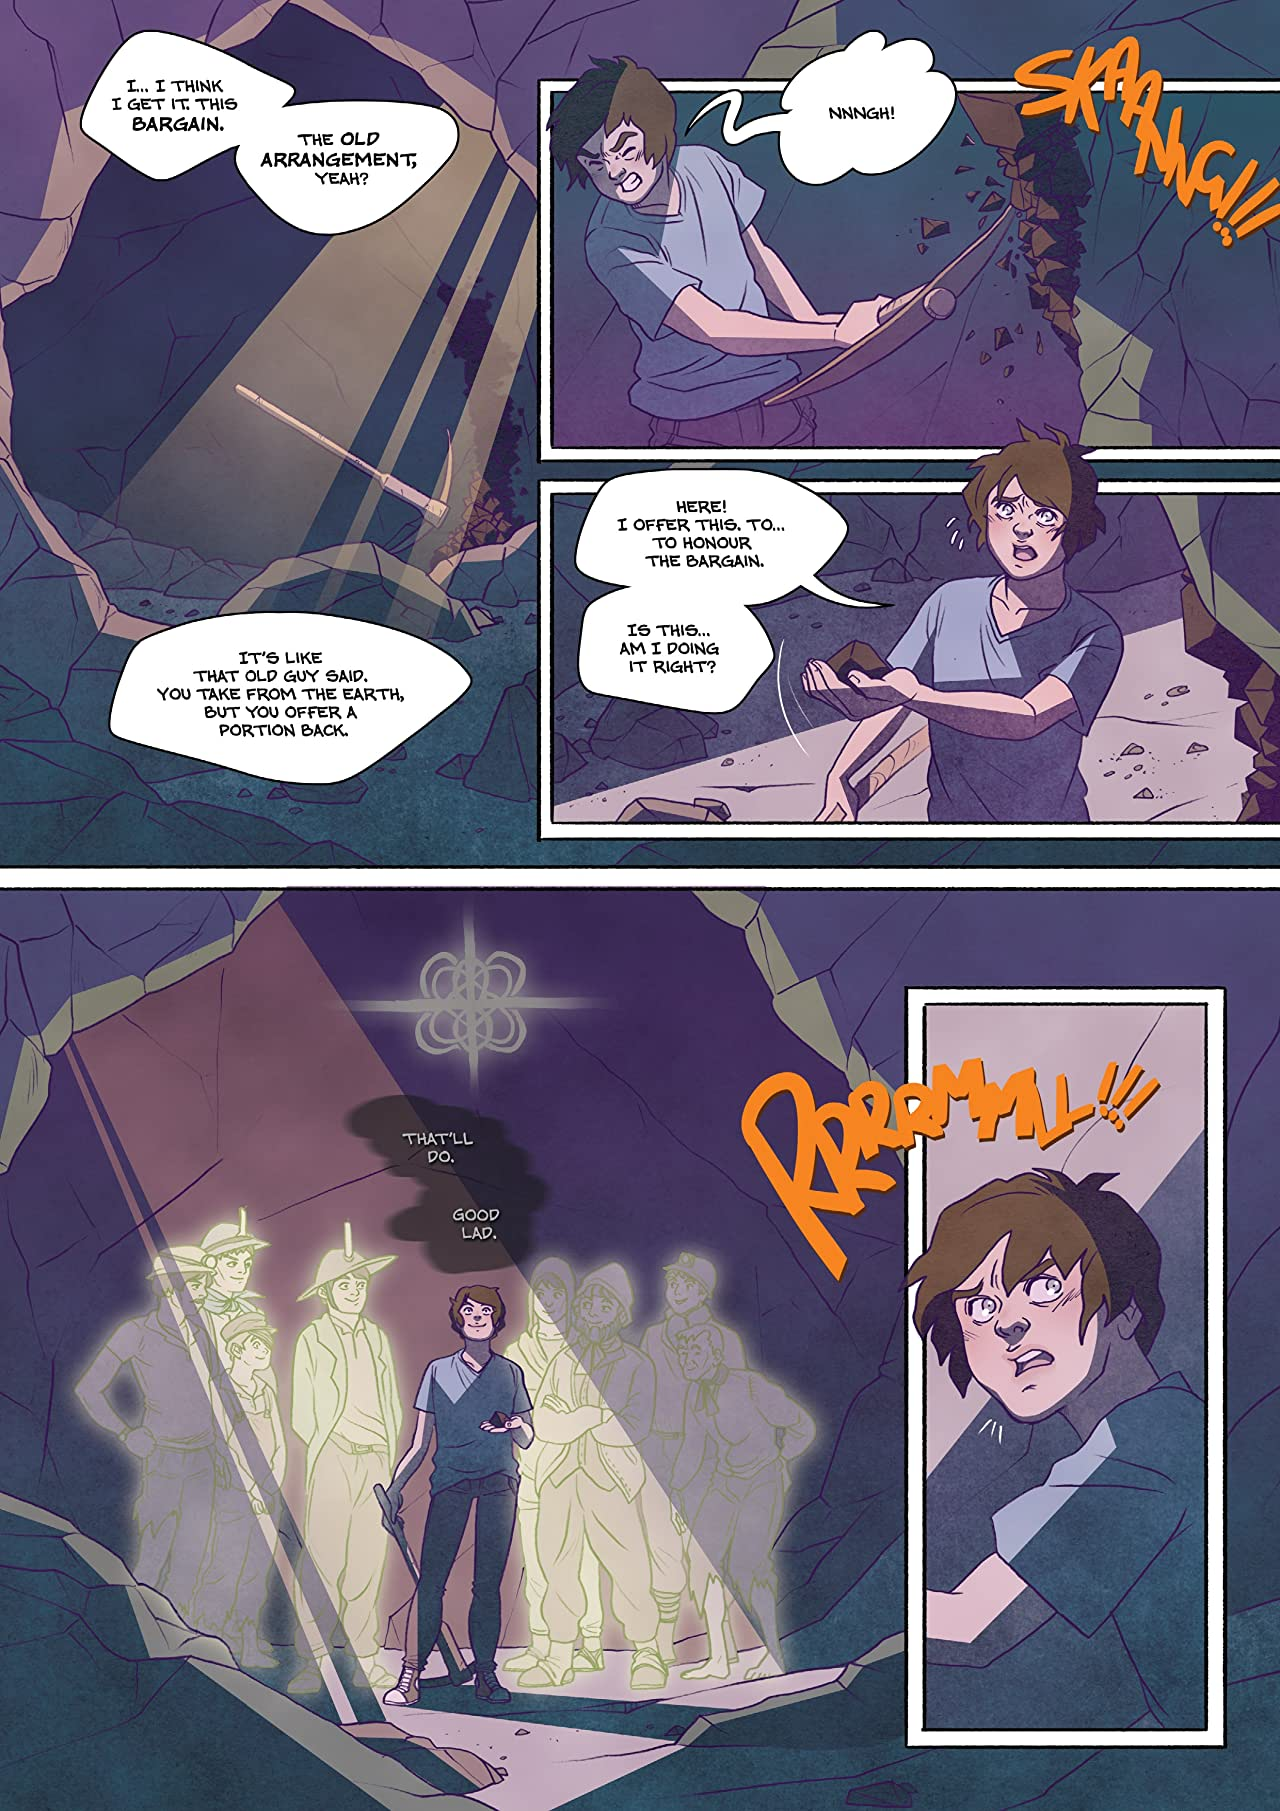 The Phoenix #241: The Weekly Story Comic